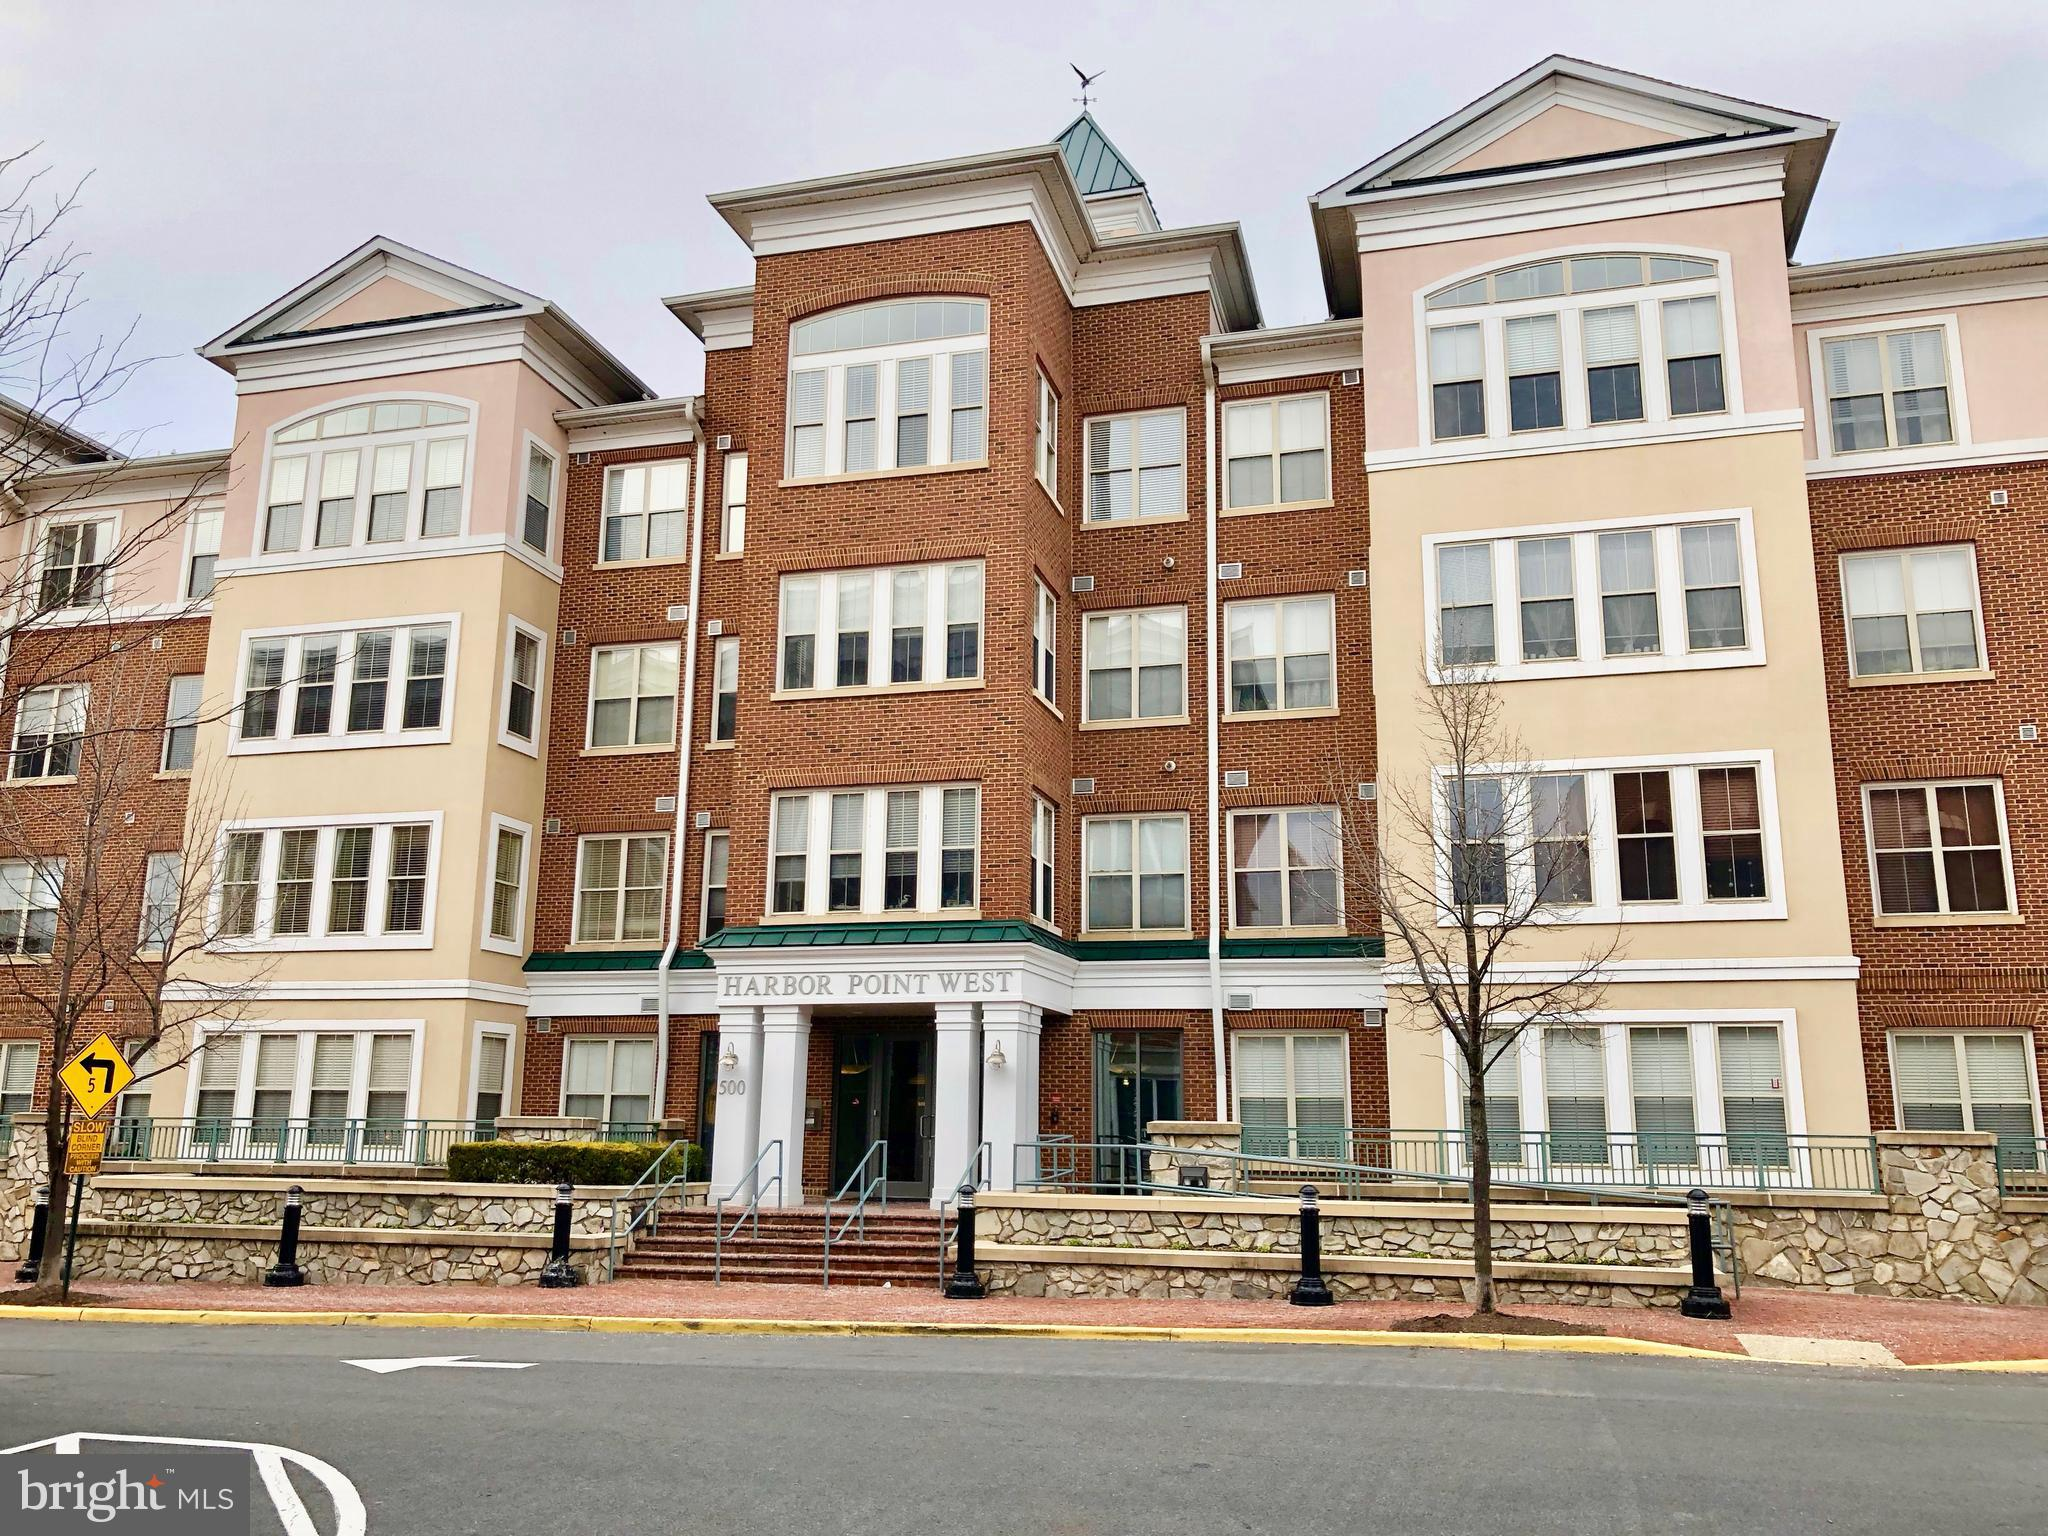 PROFESSIONAL PHOTOS COMING SOON * What A Great Price And Fantastic Location For This Super 2 Bedroom And 2 Bath Condo * Located In The Sought After Water Front Community Of Belmont Bay * Walk Out The Front Door And You Are A Block Away From The Waterfront Marina * This Unit Features A Light Filled Sunroom And Large Living Room * Kitchen Features Corian Counter Tops And Gas Cooking * Separate Formal Dining Area * Large Master Bedroom With Walk~In Closet * Master Bath With Custom Tile Double Shower And Ceramic Tile Flooring * This Unit Includes Private Storage Unit Right Outside The Front Door And 1 Garage Parking Space * Fitness Center Located Inside The Building * Don't Miss Out On The Beautiful Sunsets While Strolling The The Water Front Enjoying The Walking Paths And Community Gazebos * Walking Distance To The Virginia Rail Express Train Station * Minutes To Shopping And Major Commuter Routes Including Route 1 And Interstate 95 * A True 10+!